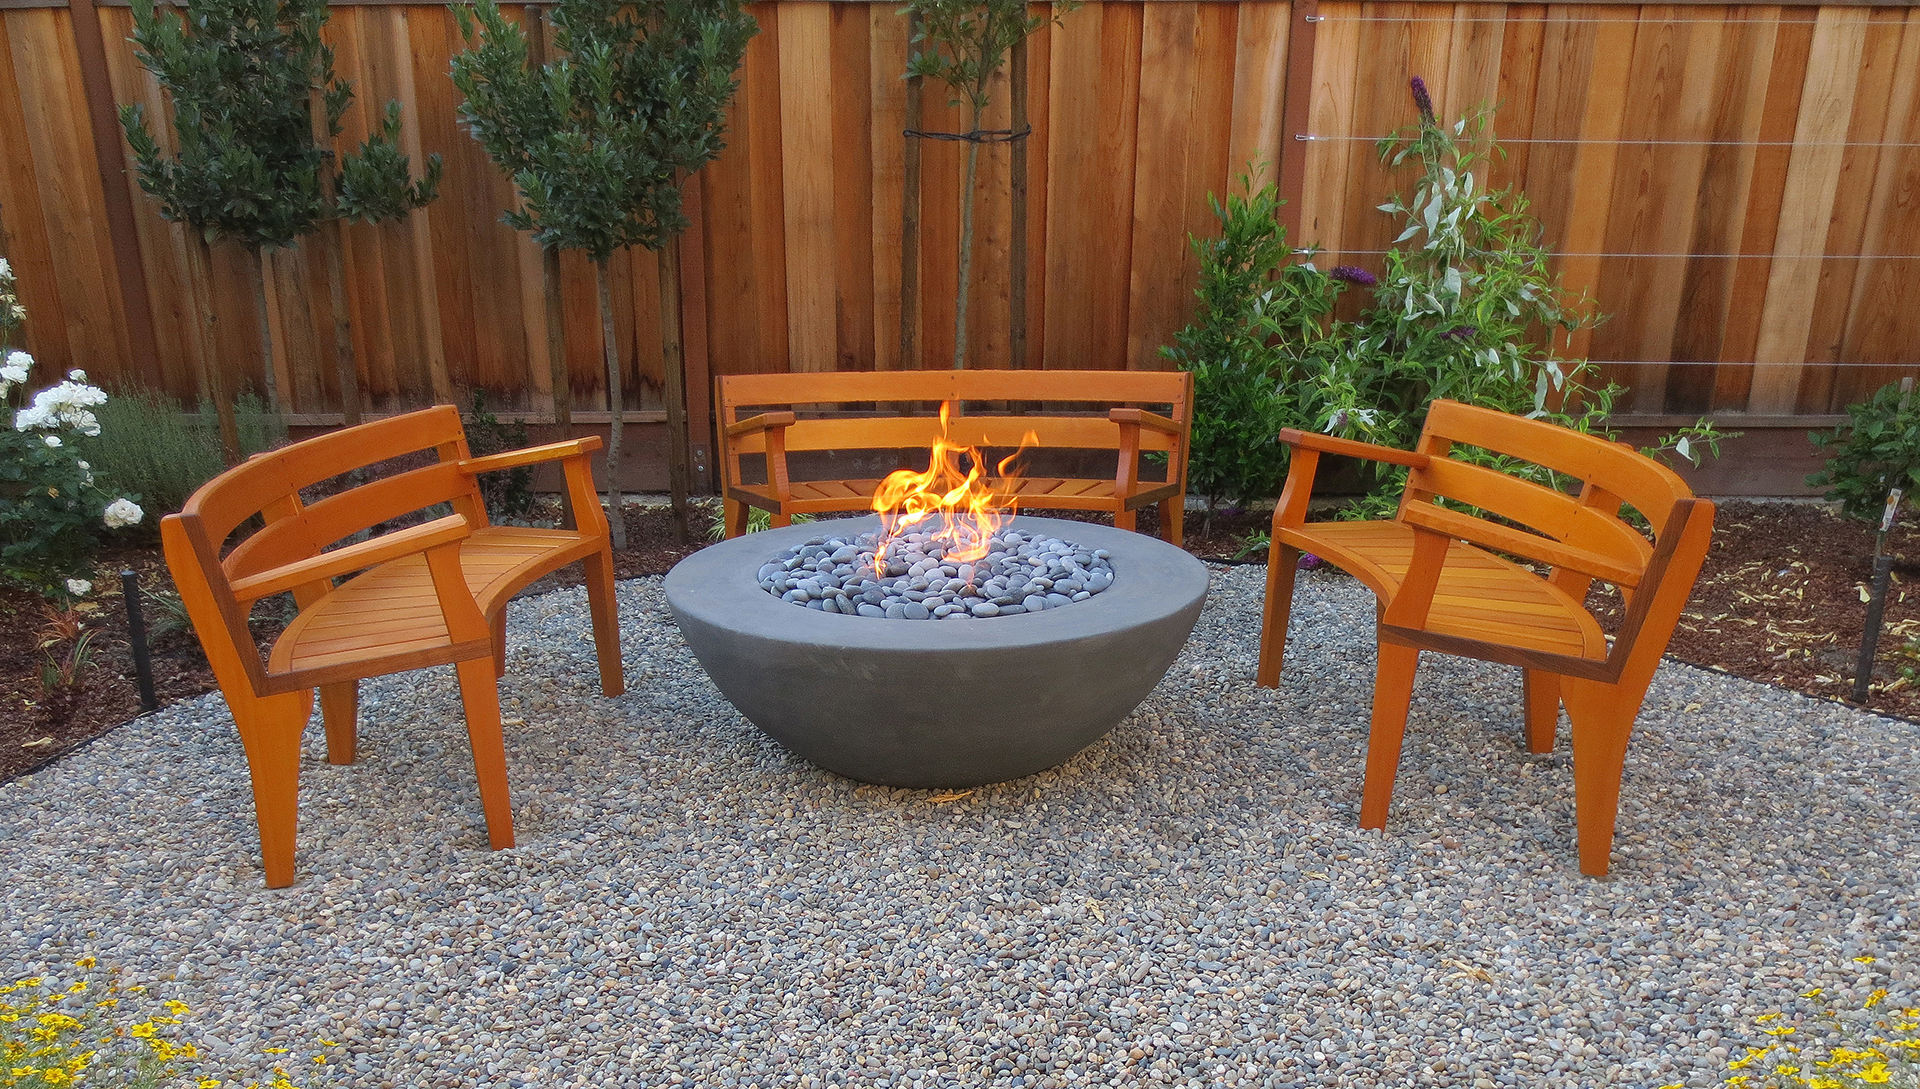 Outdoor Furniture Vancouver Part - 39: These VG Fir Curved Benches Were Designed To Circle A Garden Fireplace.  Note The Very Complex Lamination Of The Back Rests. Due To The Incline, ...